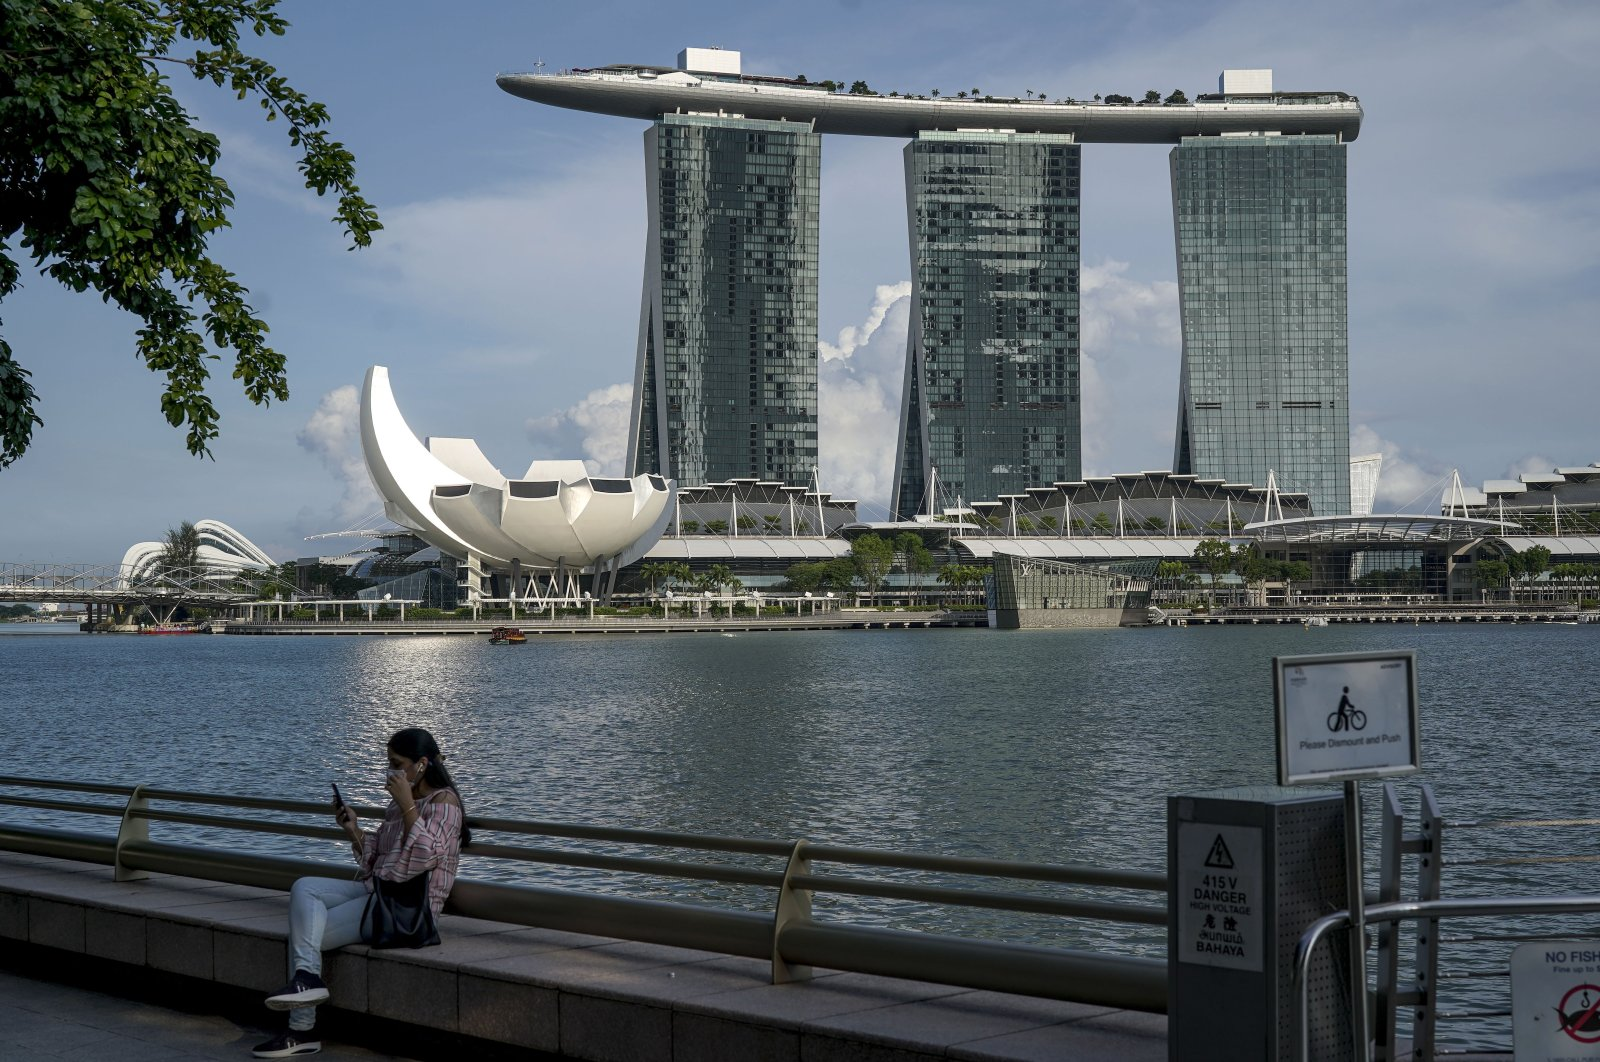 A woman sits along a ledge pictured in front of Marina Bay Sands Hotel in Singapore, April 14, 2021. (EPA Photo)